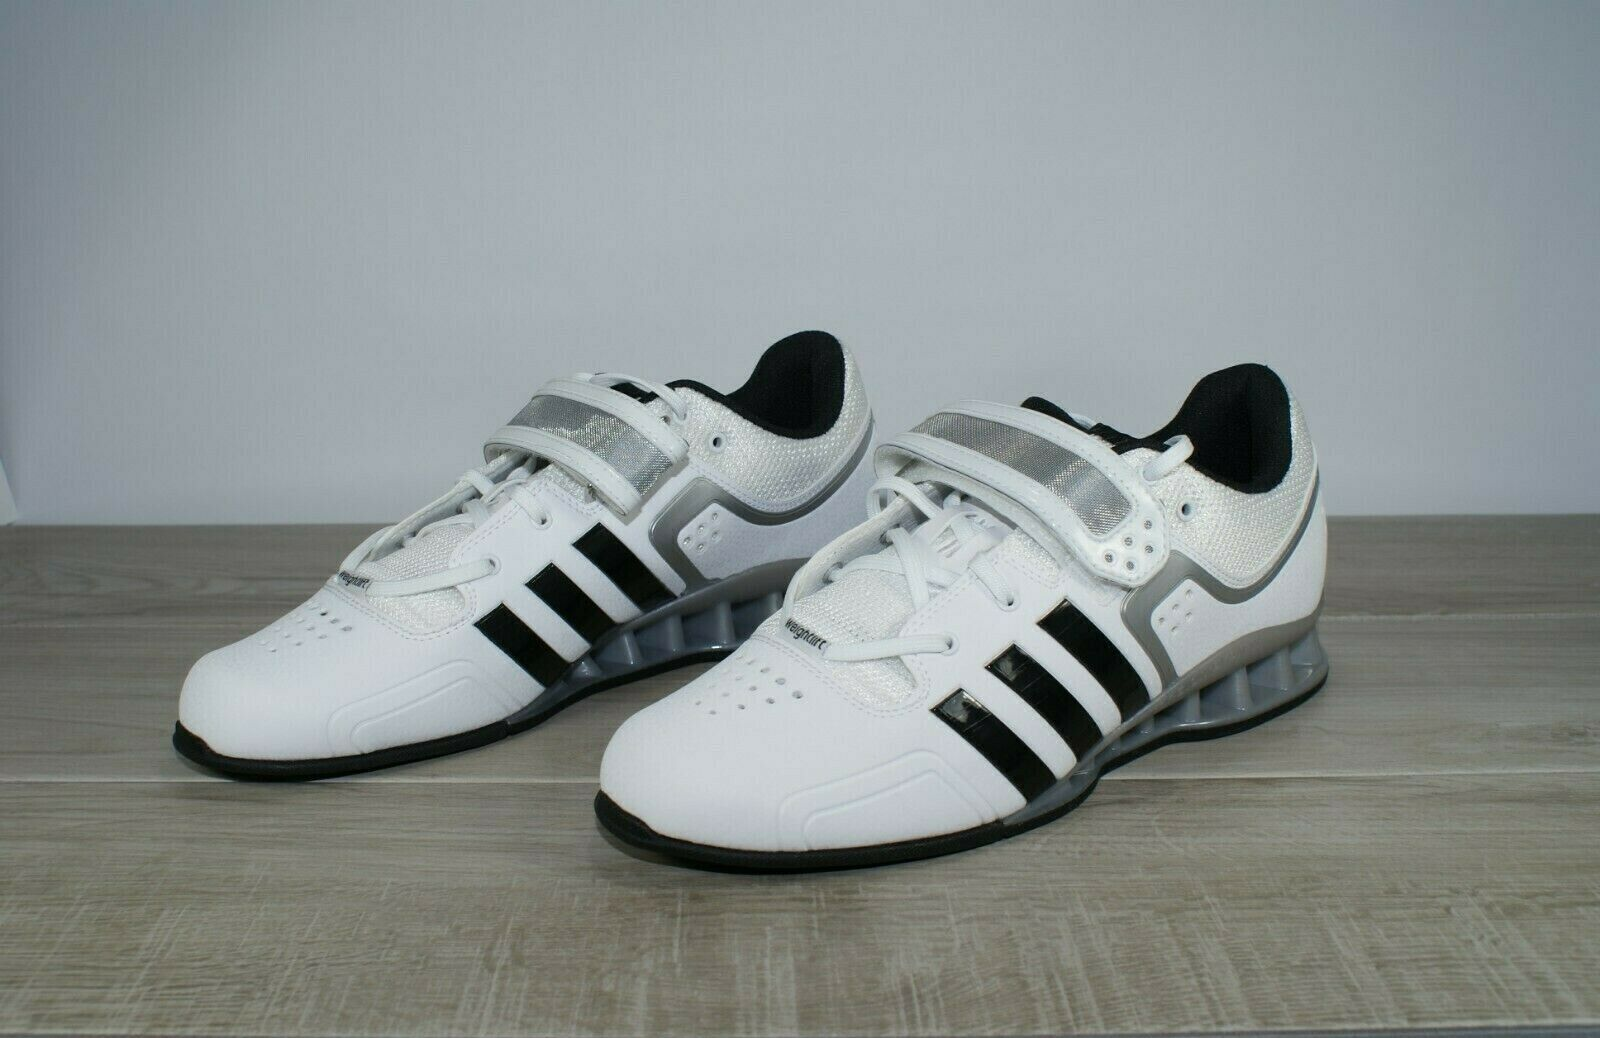 Adidas AdiPower Weightlifting Powerlift Trainer shoes White M25733 Mens Sz 14